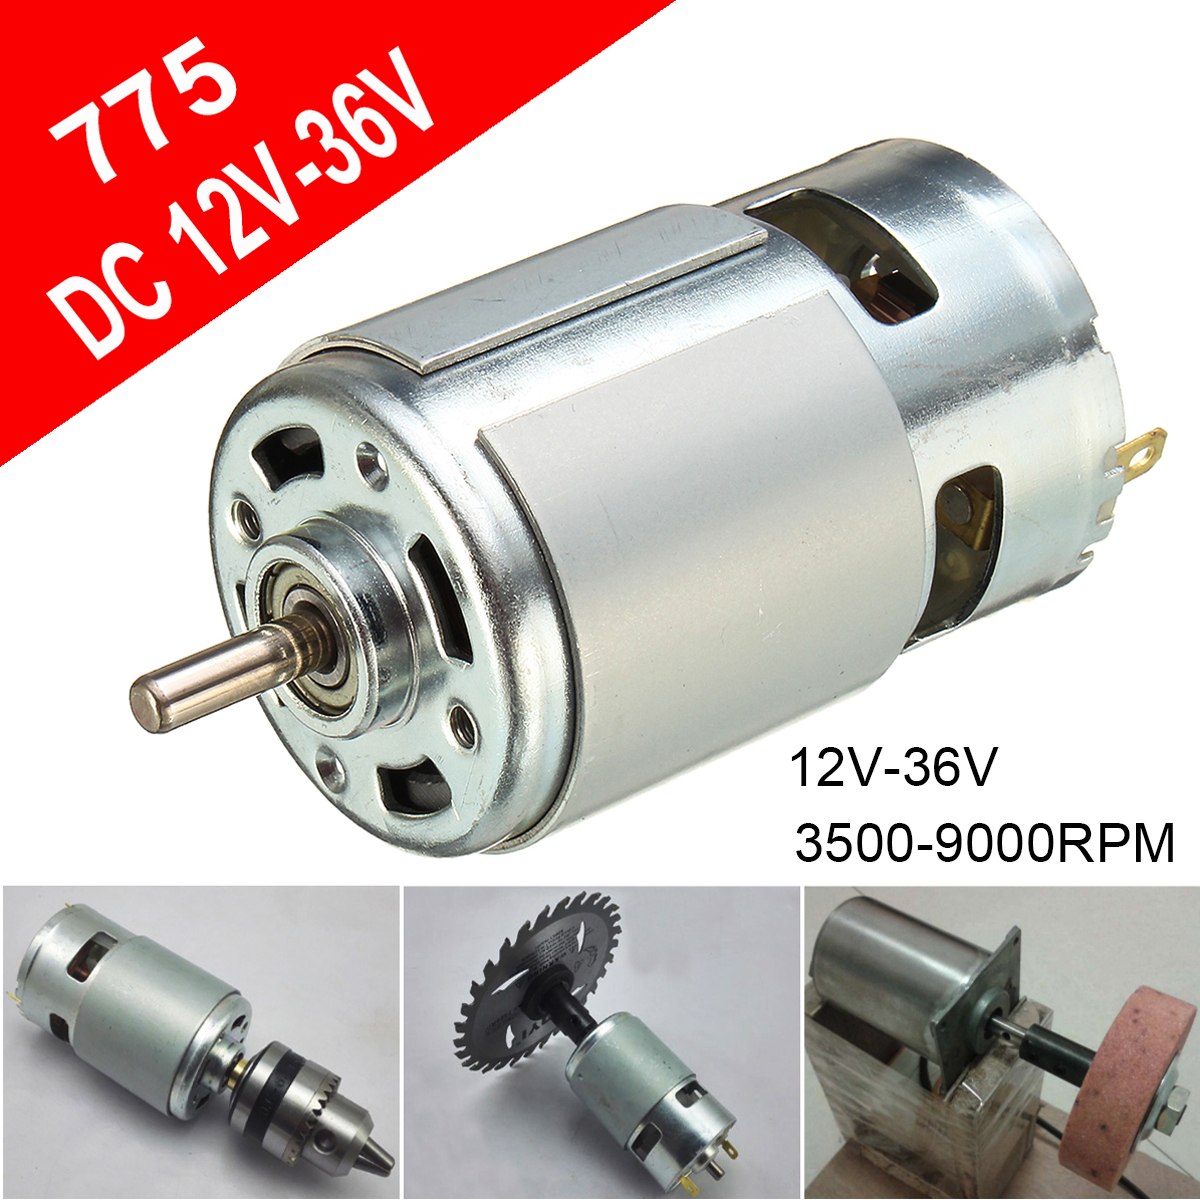 775 DC 12V-36V 3500-9000RPM Motor Ball Bearing Large Torque High Power Low Noise DC Motor Accessories Electrical Supply цена